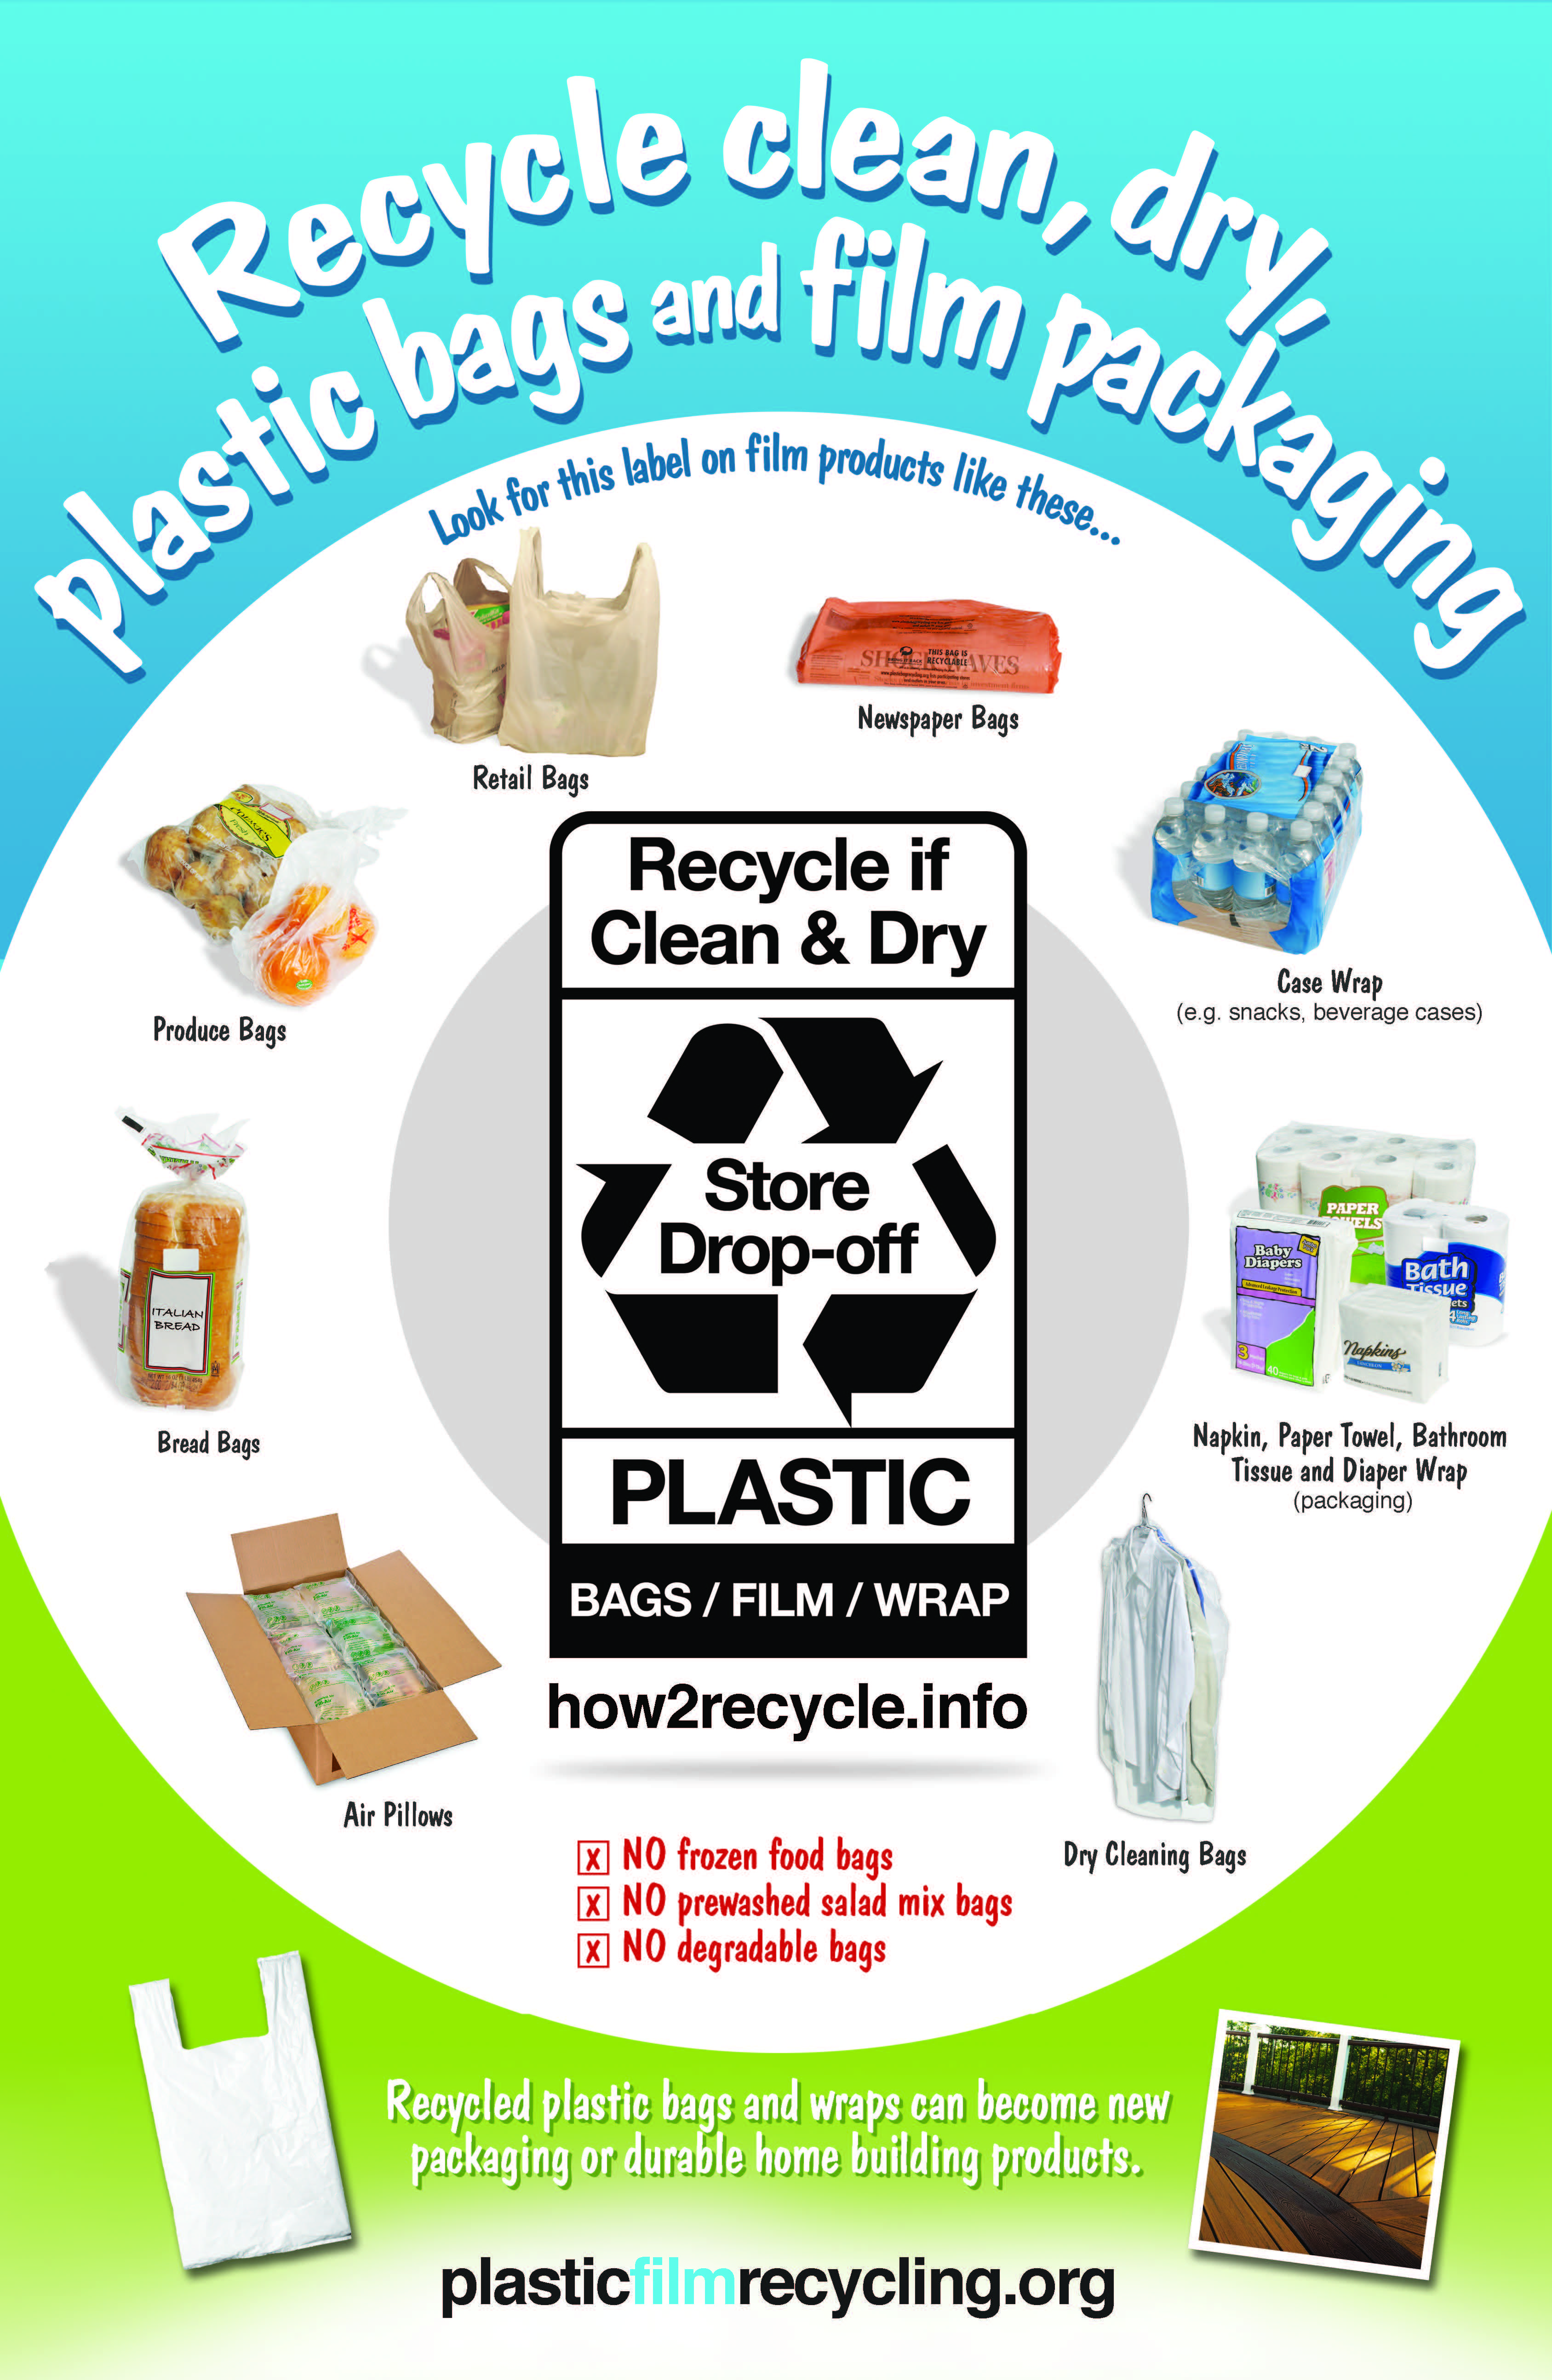 Pin by Keep Pearland Beautiful on Recycling in Pearland